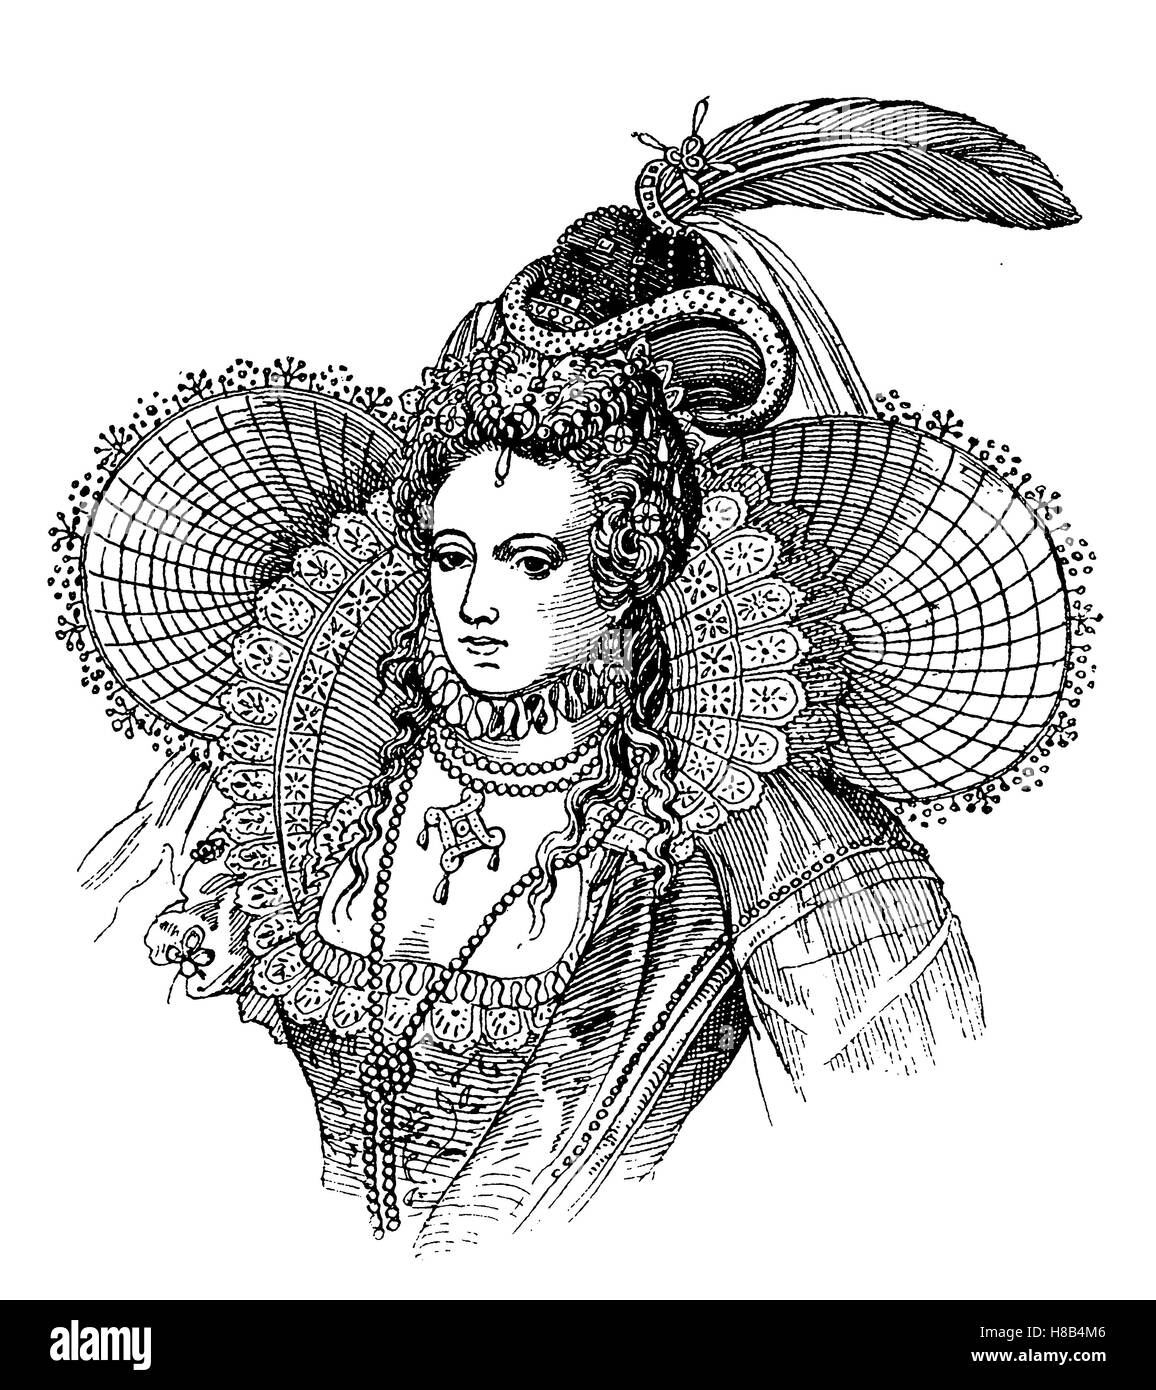 Elizabeth I of England, 1590, History of fashion, costume story - Stock Image